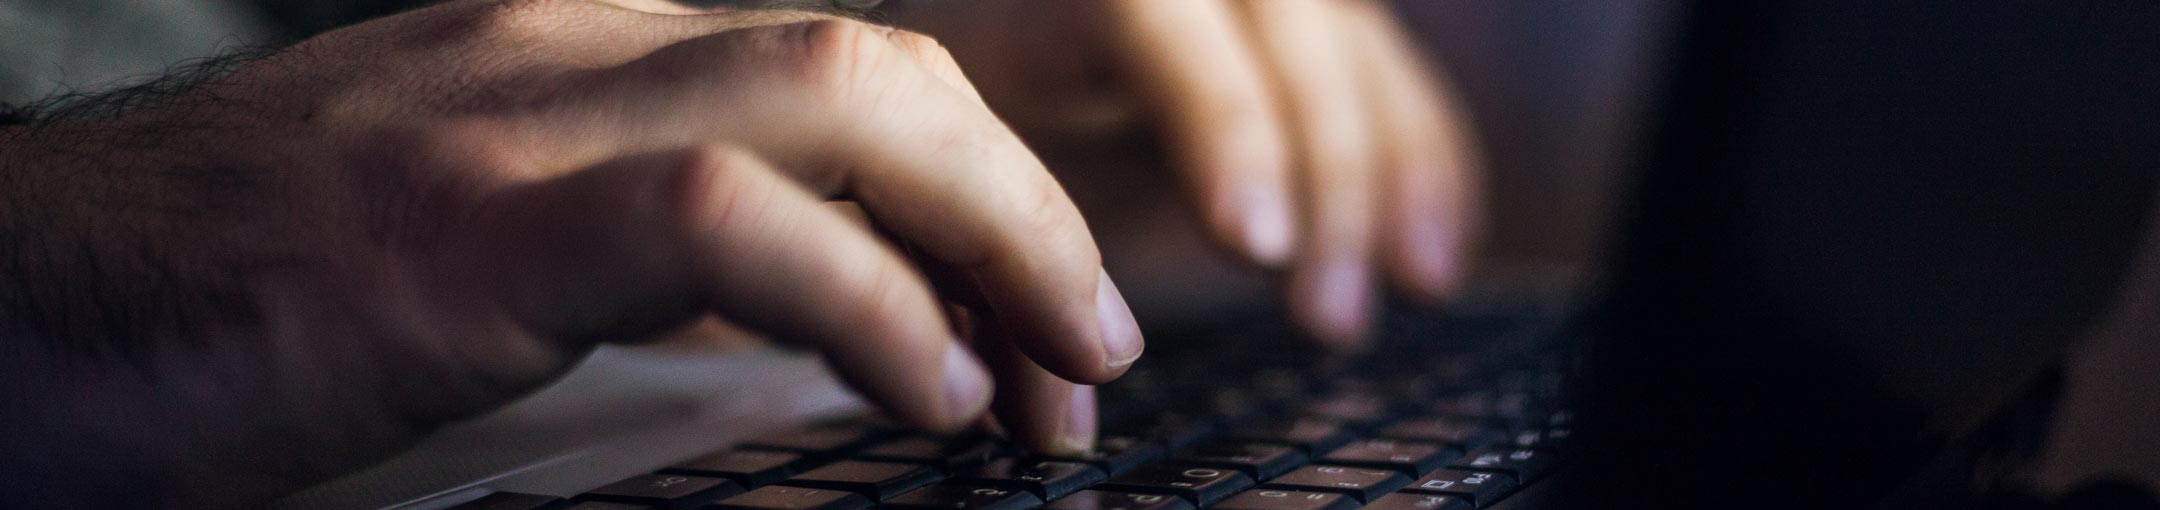 Close up of hands typing on laptop keyboard.